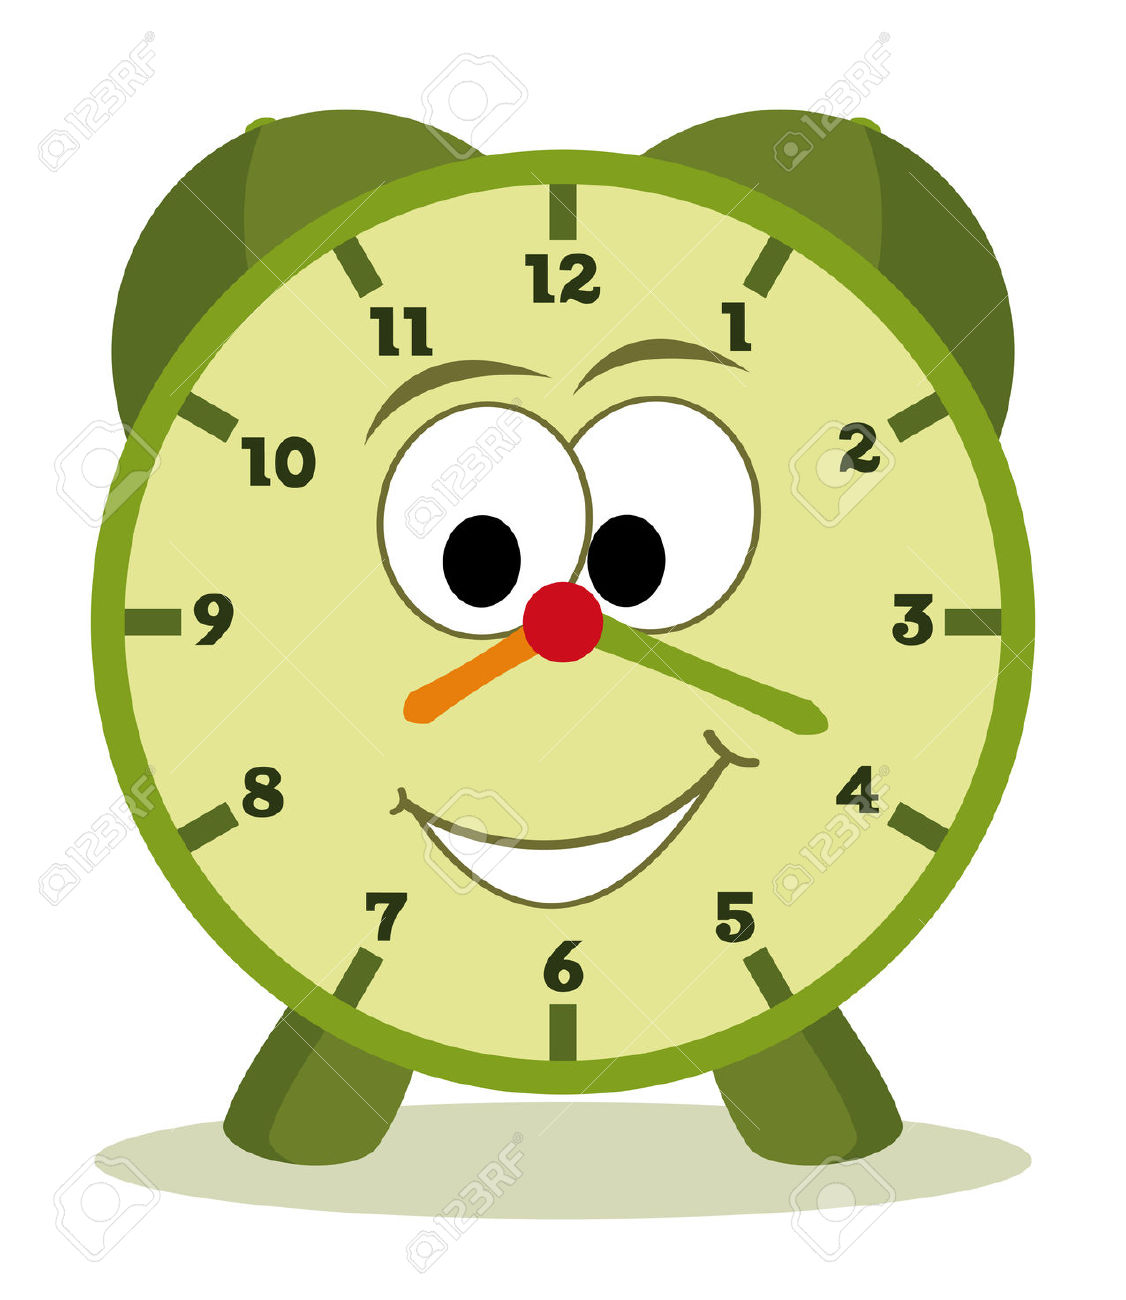 Funny Cartoon Clock For Kids Royalty Free Cliparts, Vectors, And.